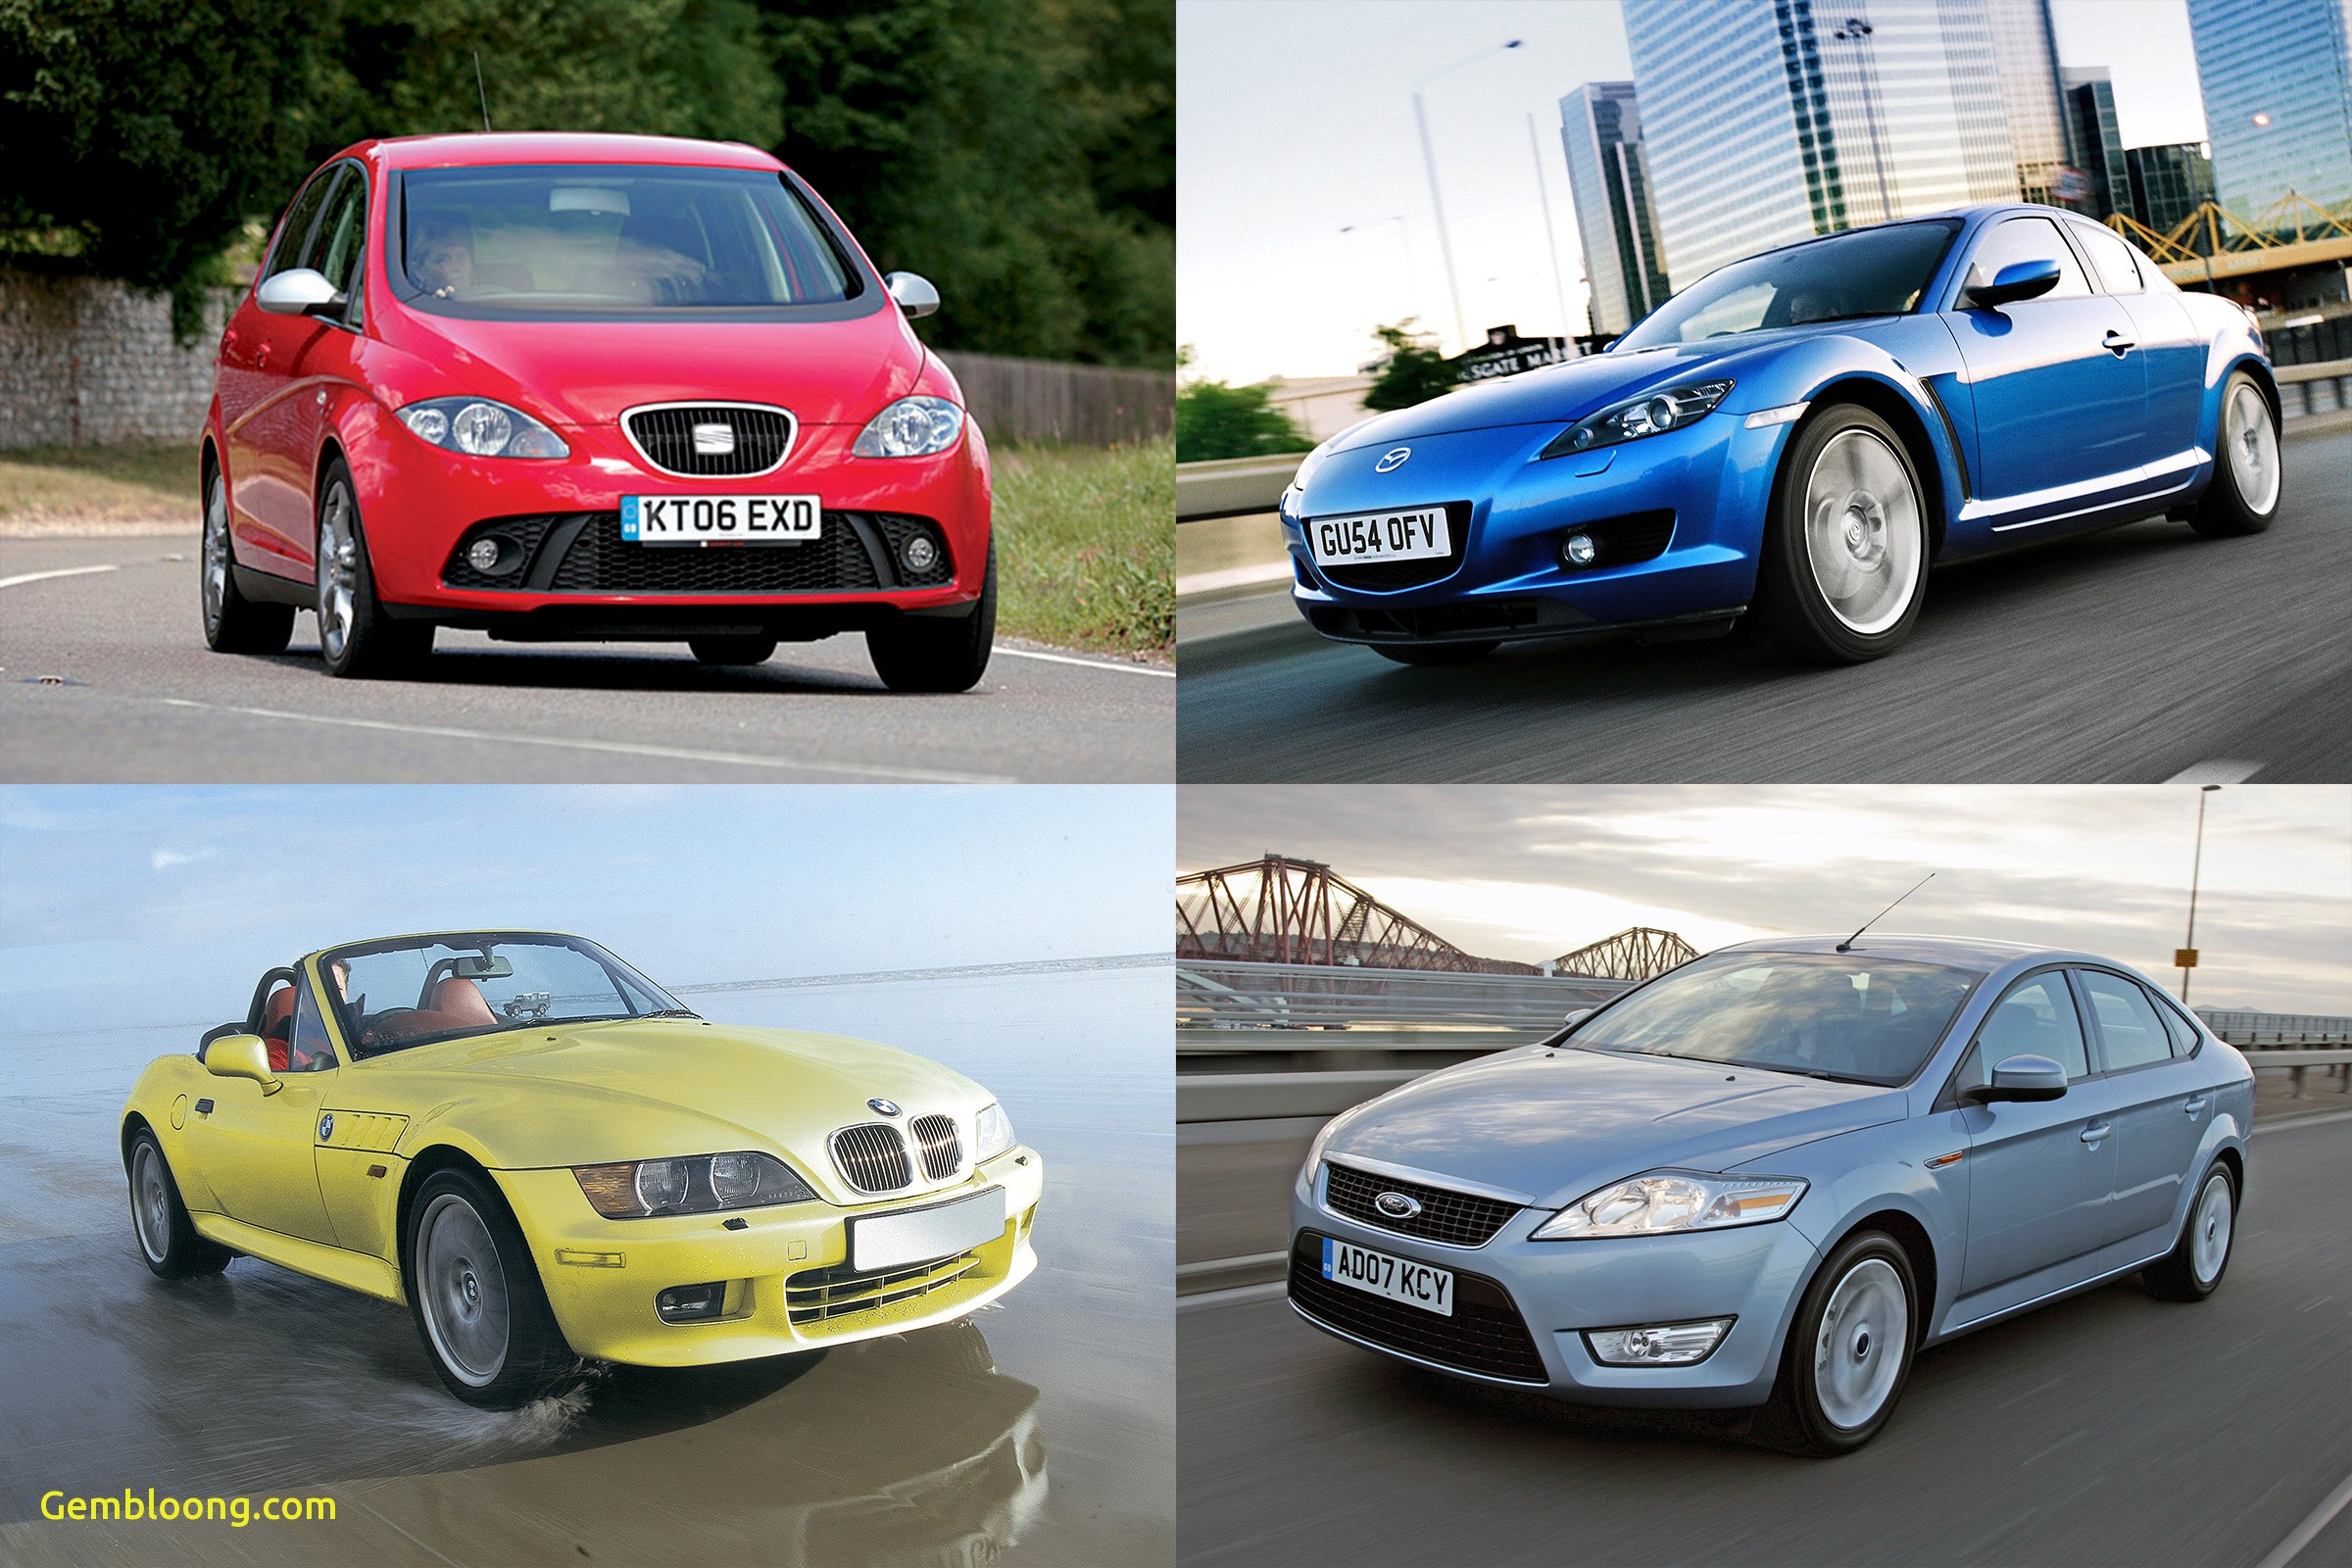 Used Cars for Sale Near Me Under 2000 Dollars Beautiful Used Cars 2000 Luxury Fresh Used Cars Under 2000